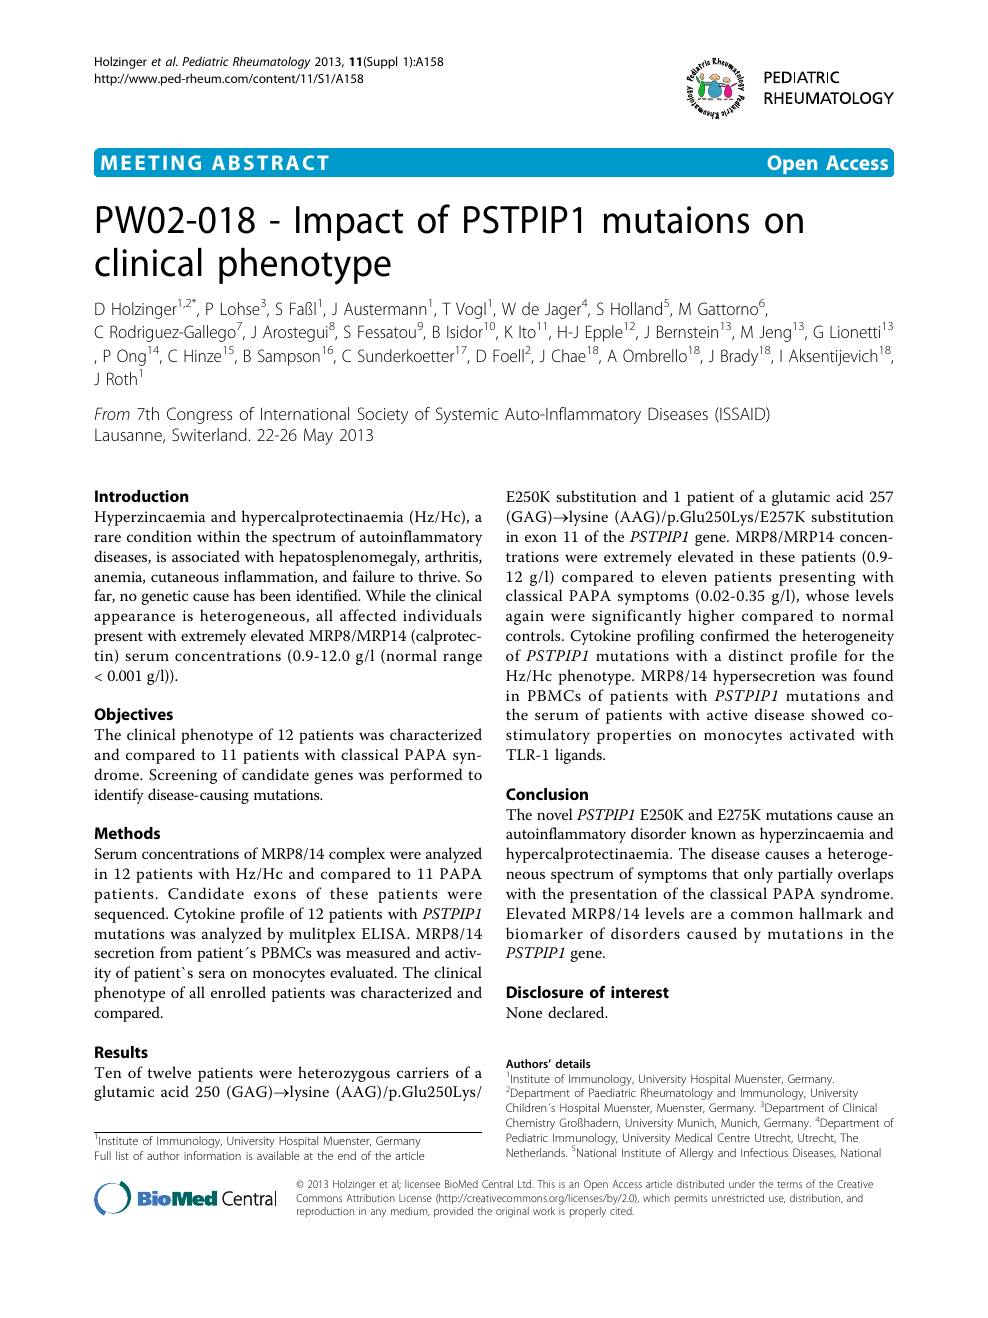 PW02-018 - Impact of PSTPIP1 mutaions on clinical phenotype